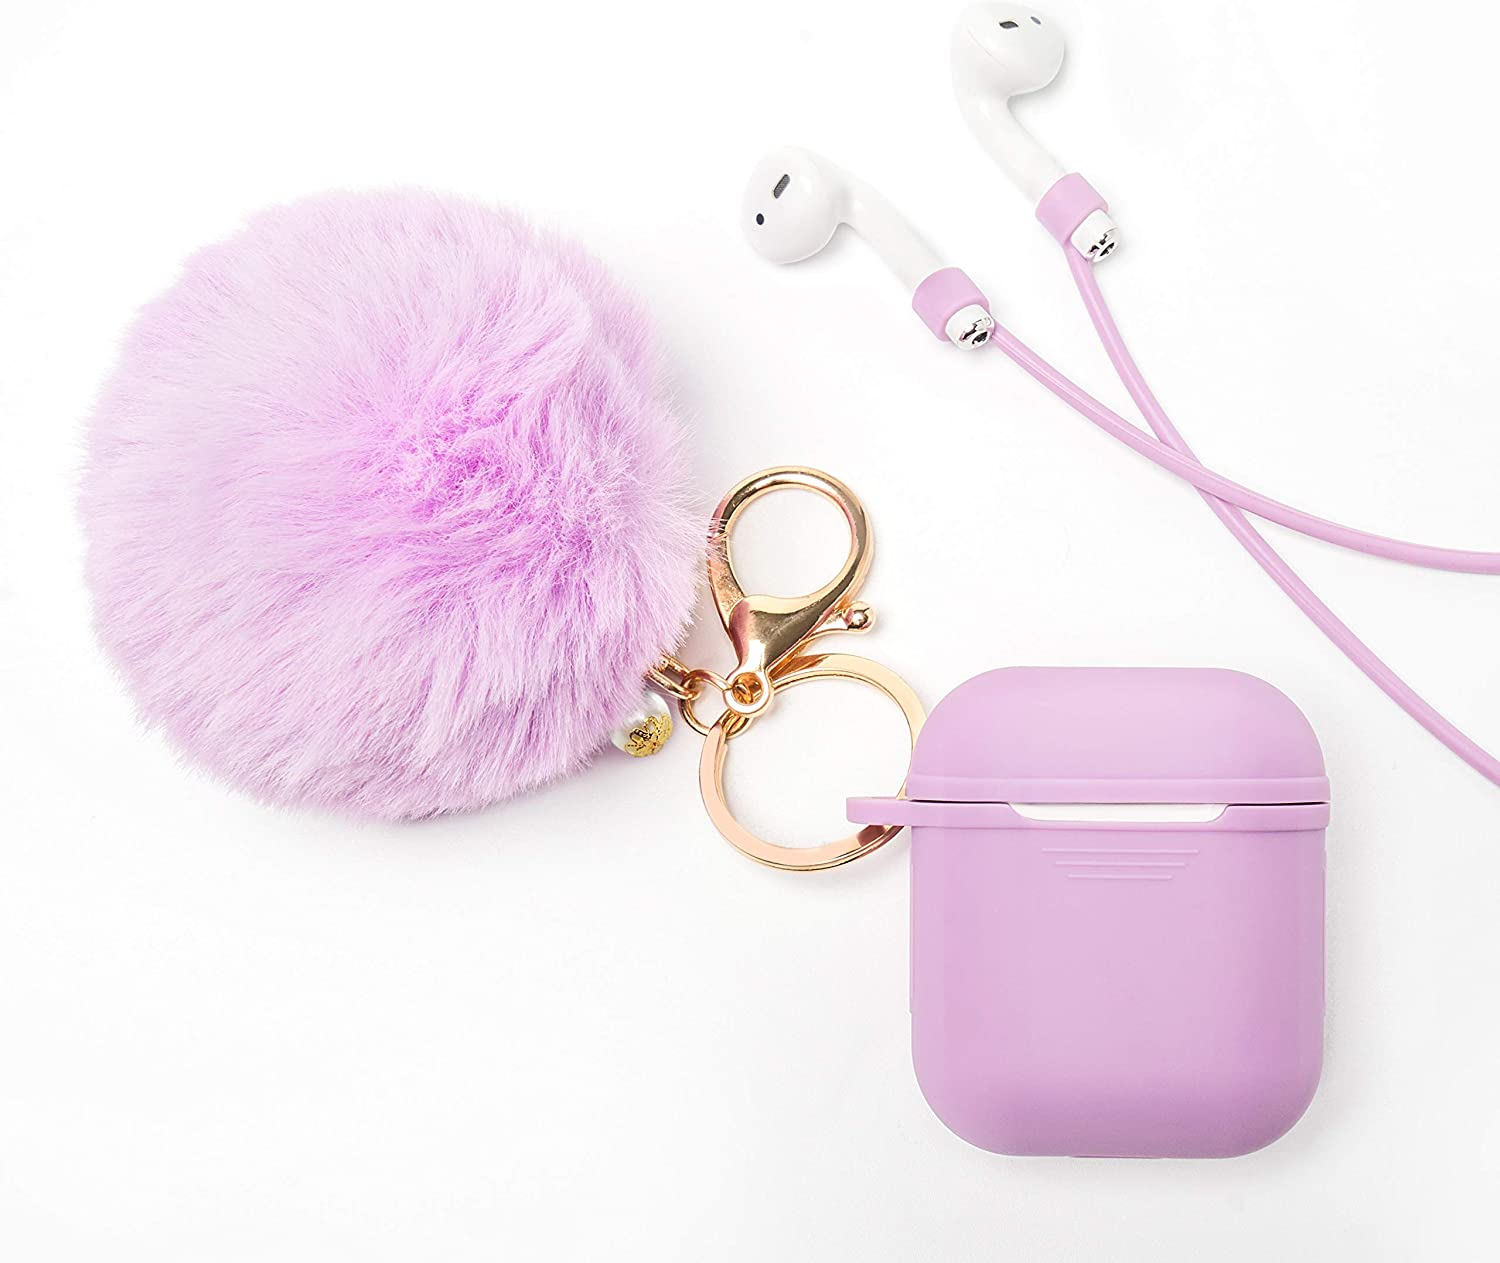 Gary for Apple Airpod 1/&2 Airpods Case Cover Protective Case, Anti-Lost Strap, Fur Ball Keychain LEWOTE Airpods Silicone Cute Accessories